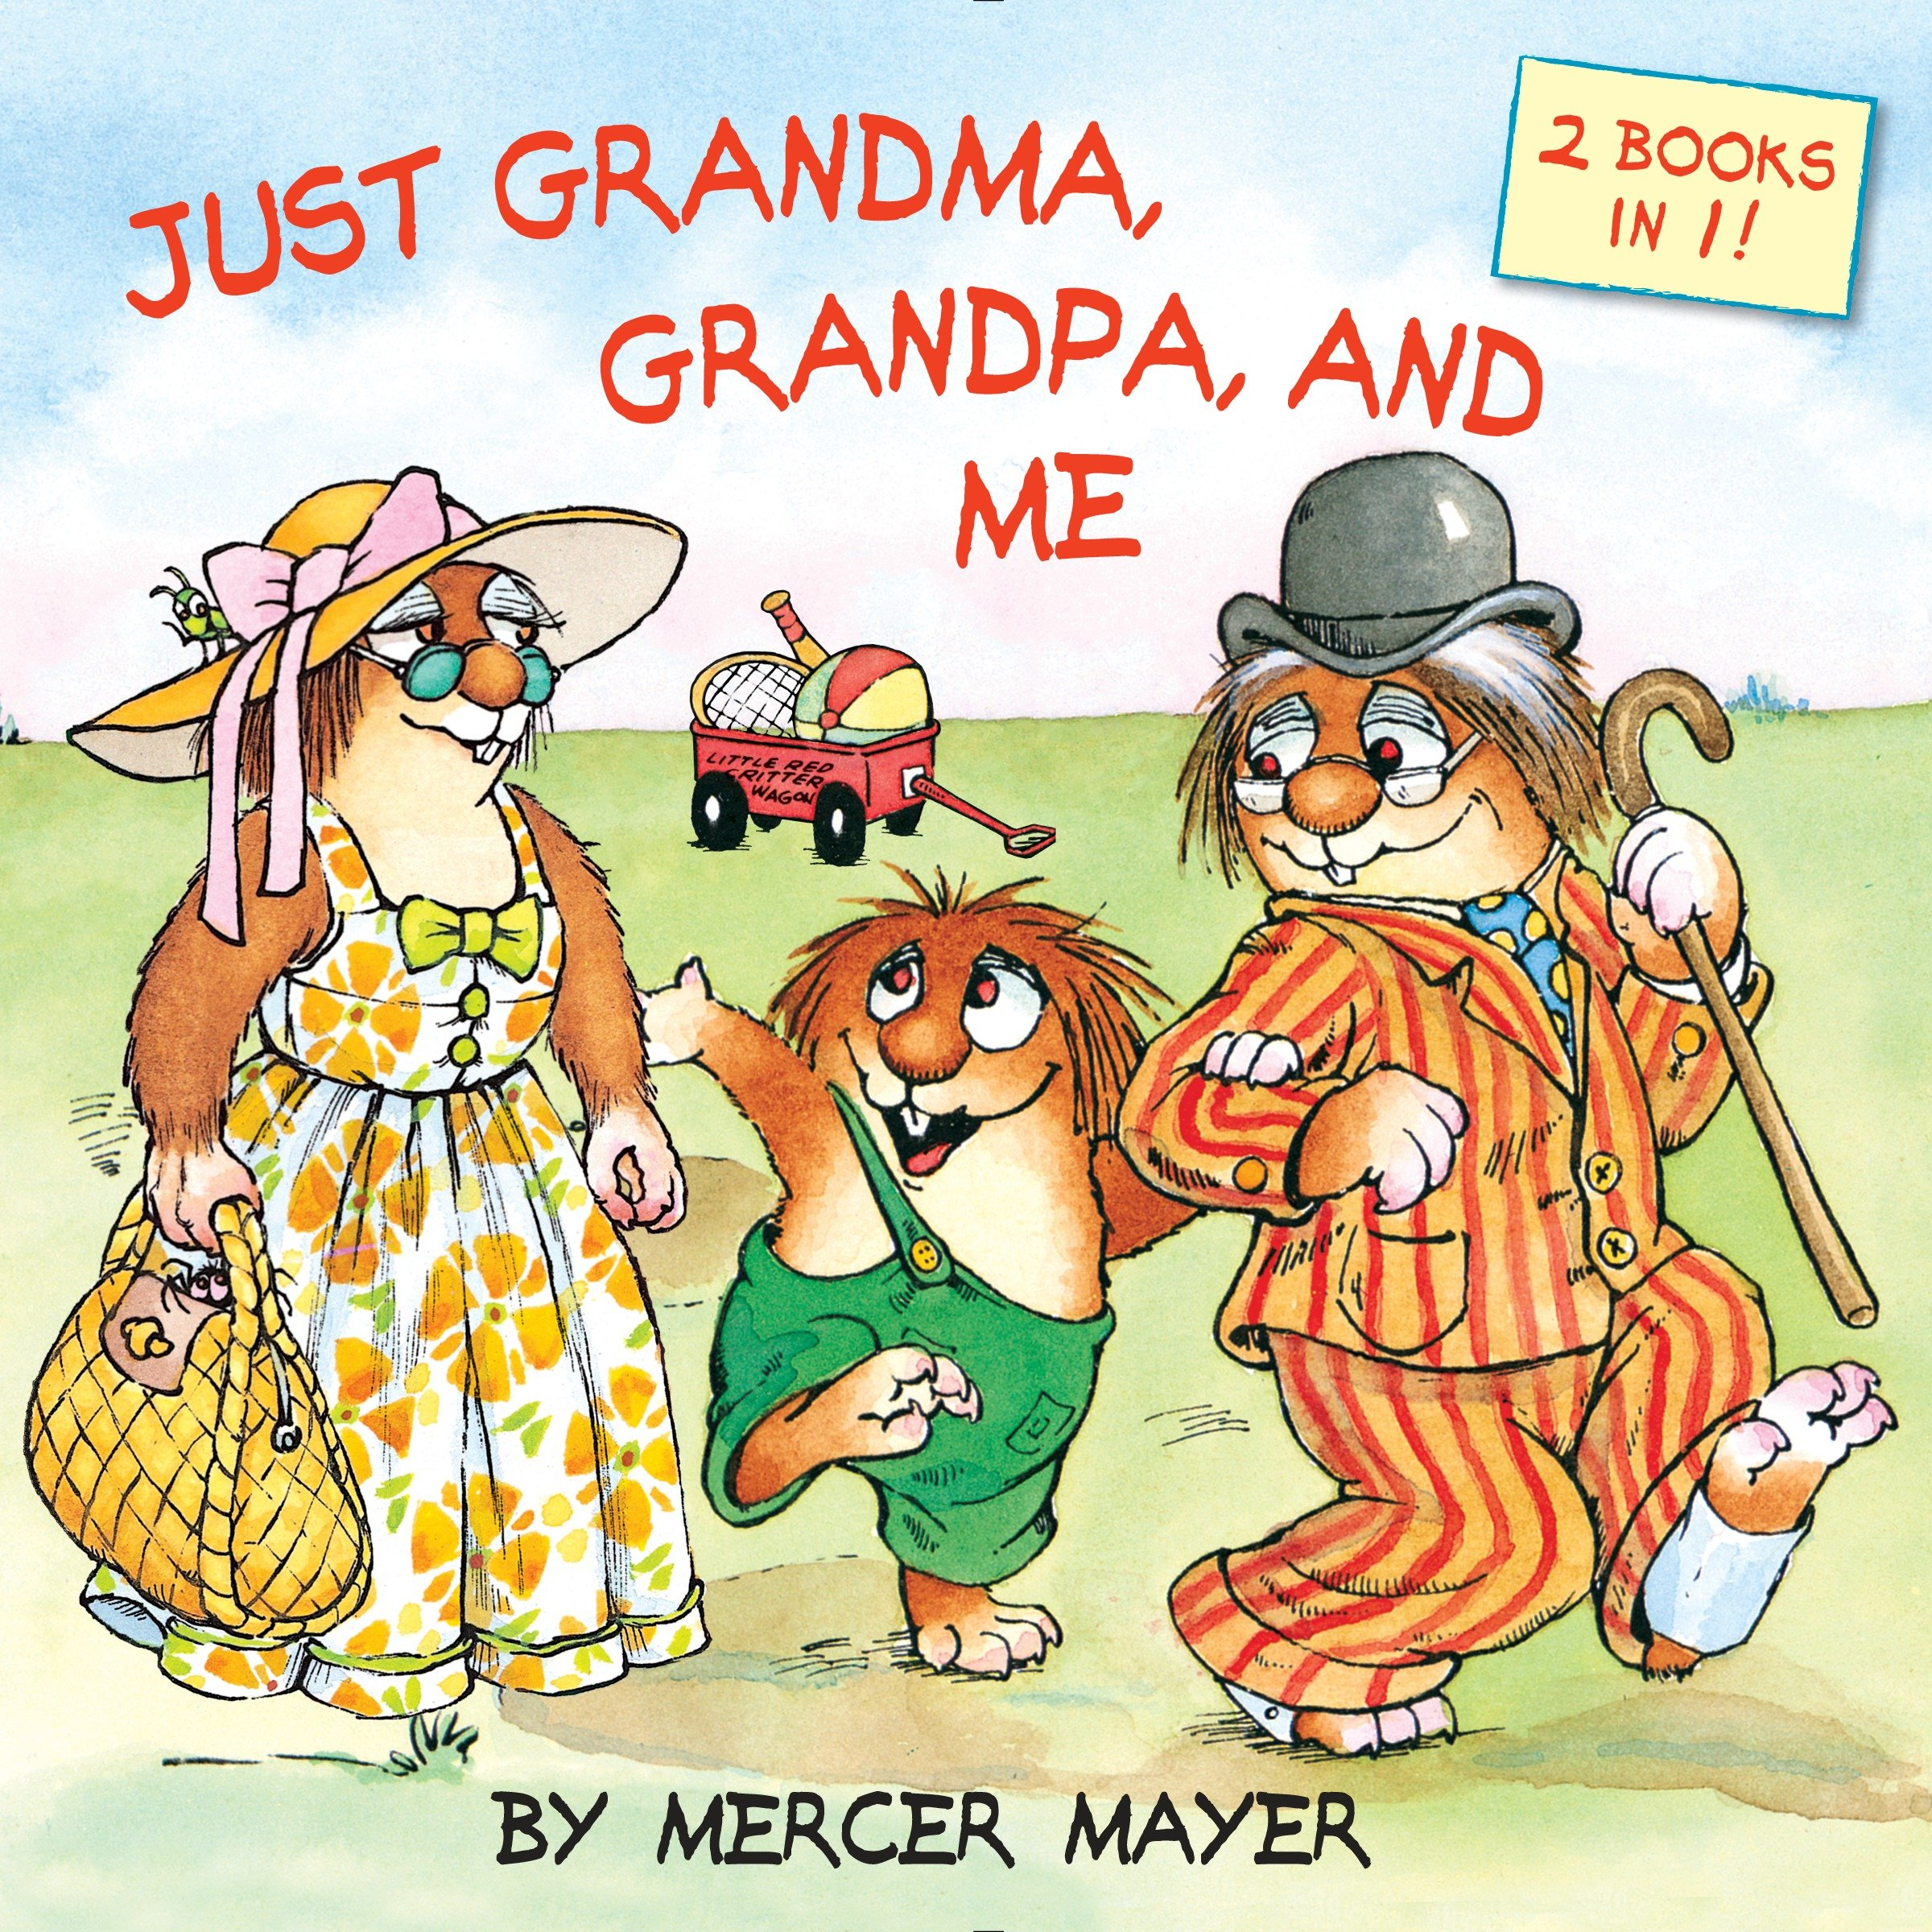 Book Just Grandma, Grandpa, And Me (little Critter) by Mercer Mayer